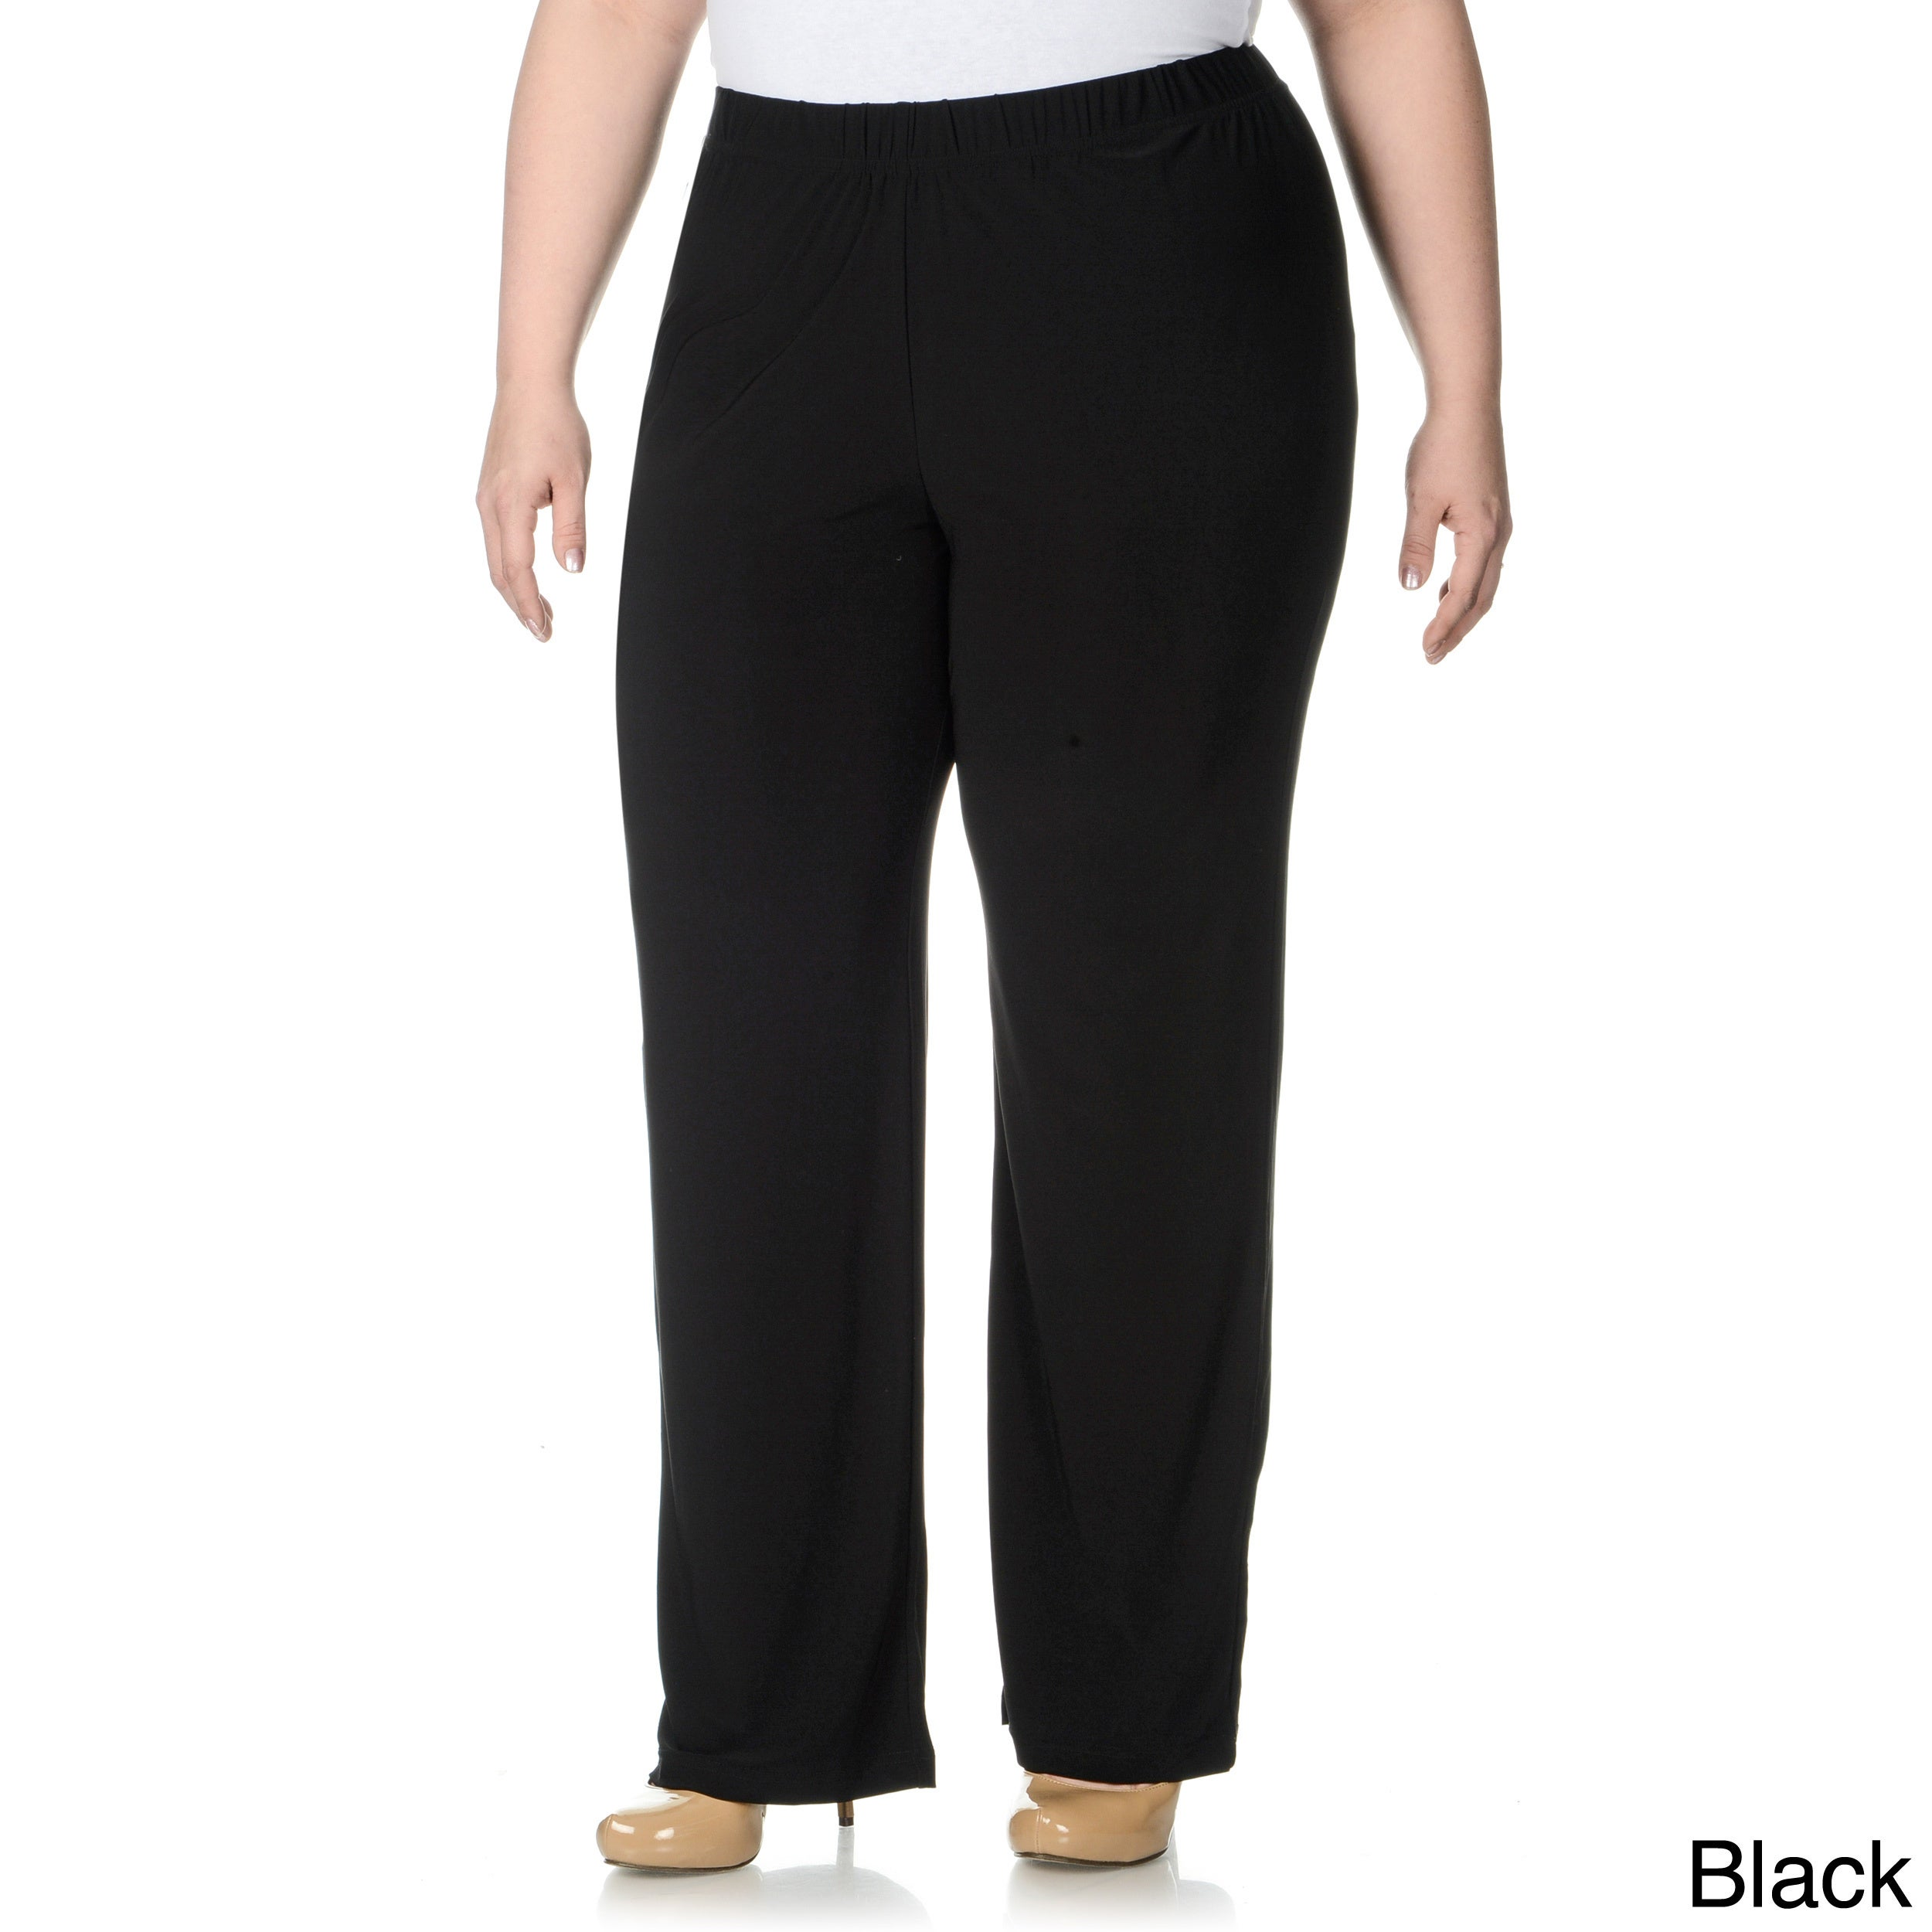 Lennie For Nina Leonard Lennie For Nina Leonard Womens Plus Size Thick Waist Band Pull on Pants Black Size 1X (14W  16W)